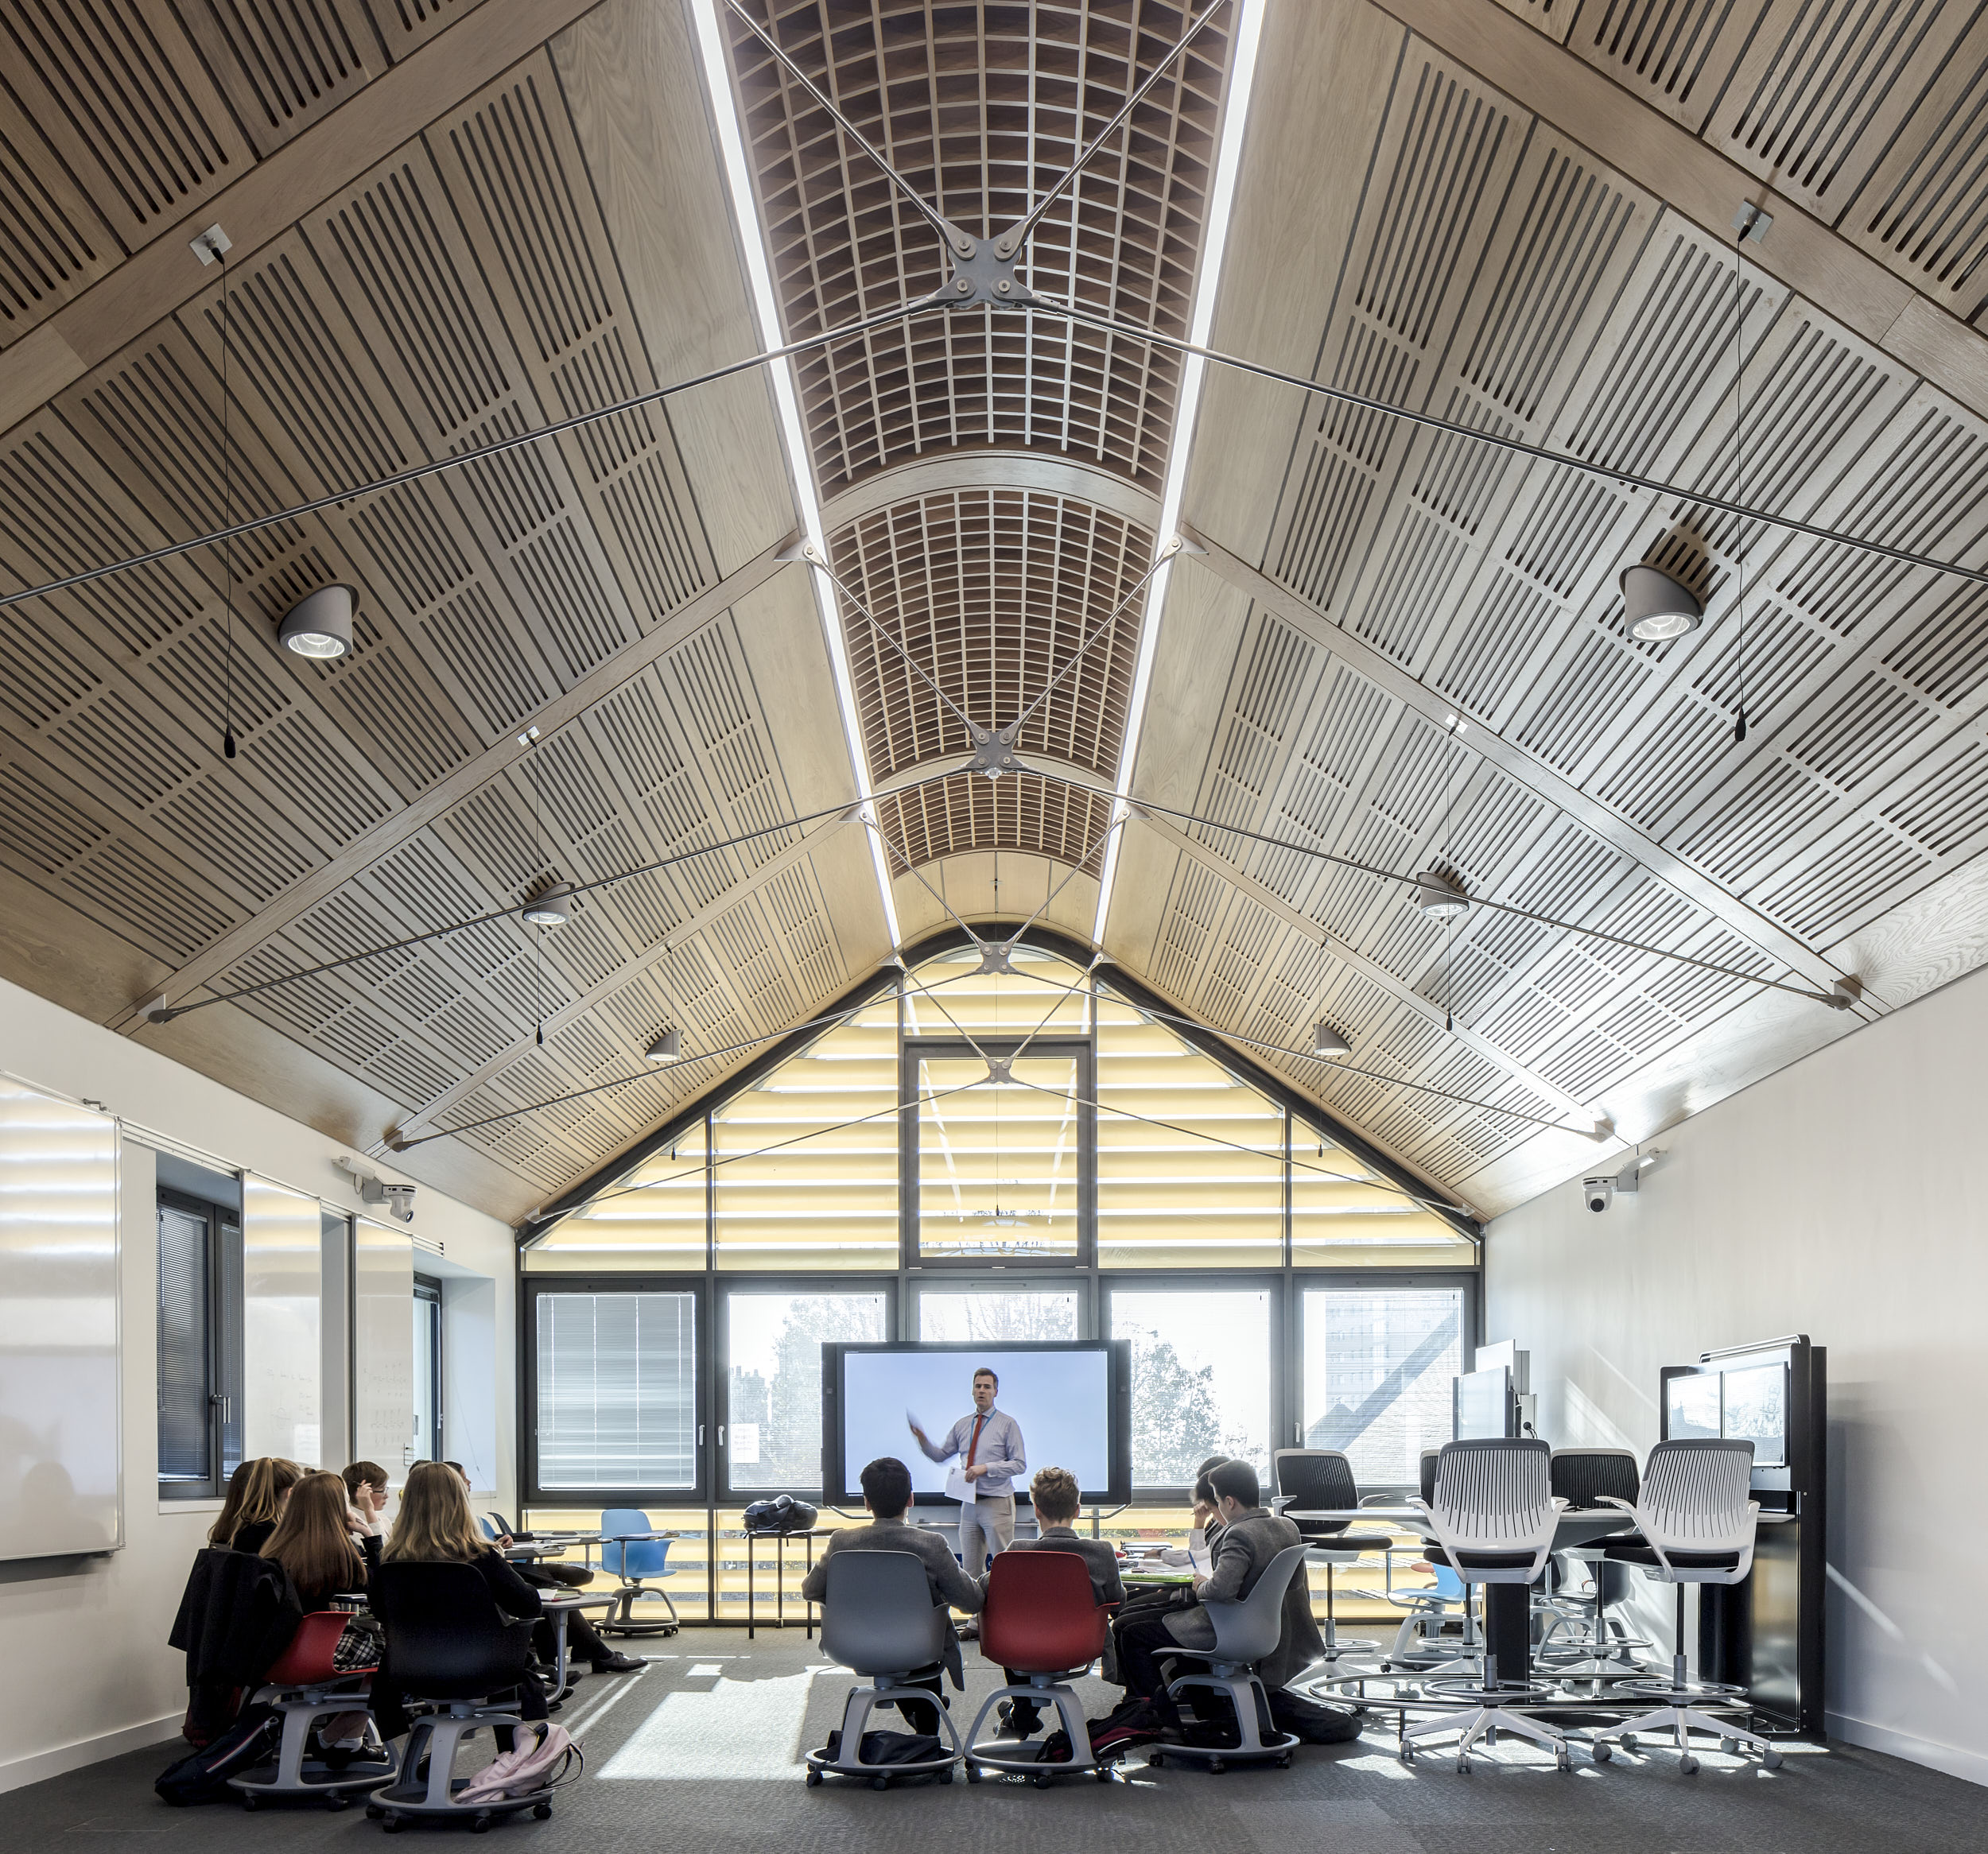 Interior photograph of a classroom featuring stunning, acoustically-panelled ceiling and visible structural bracing.